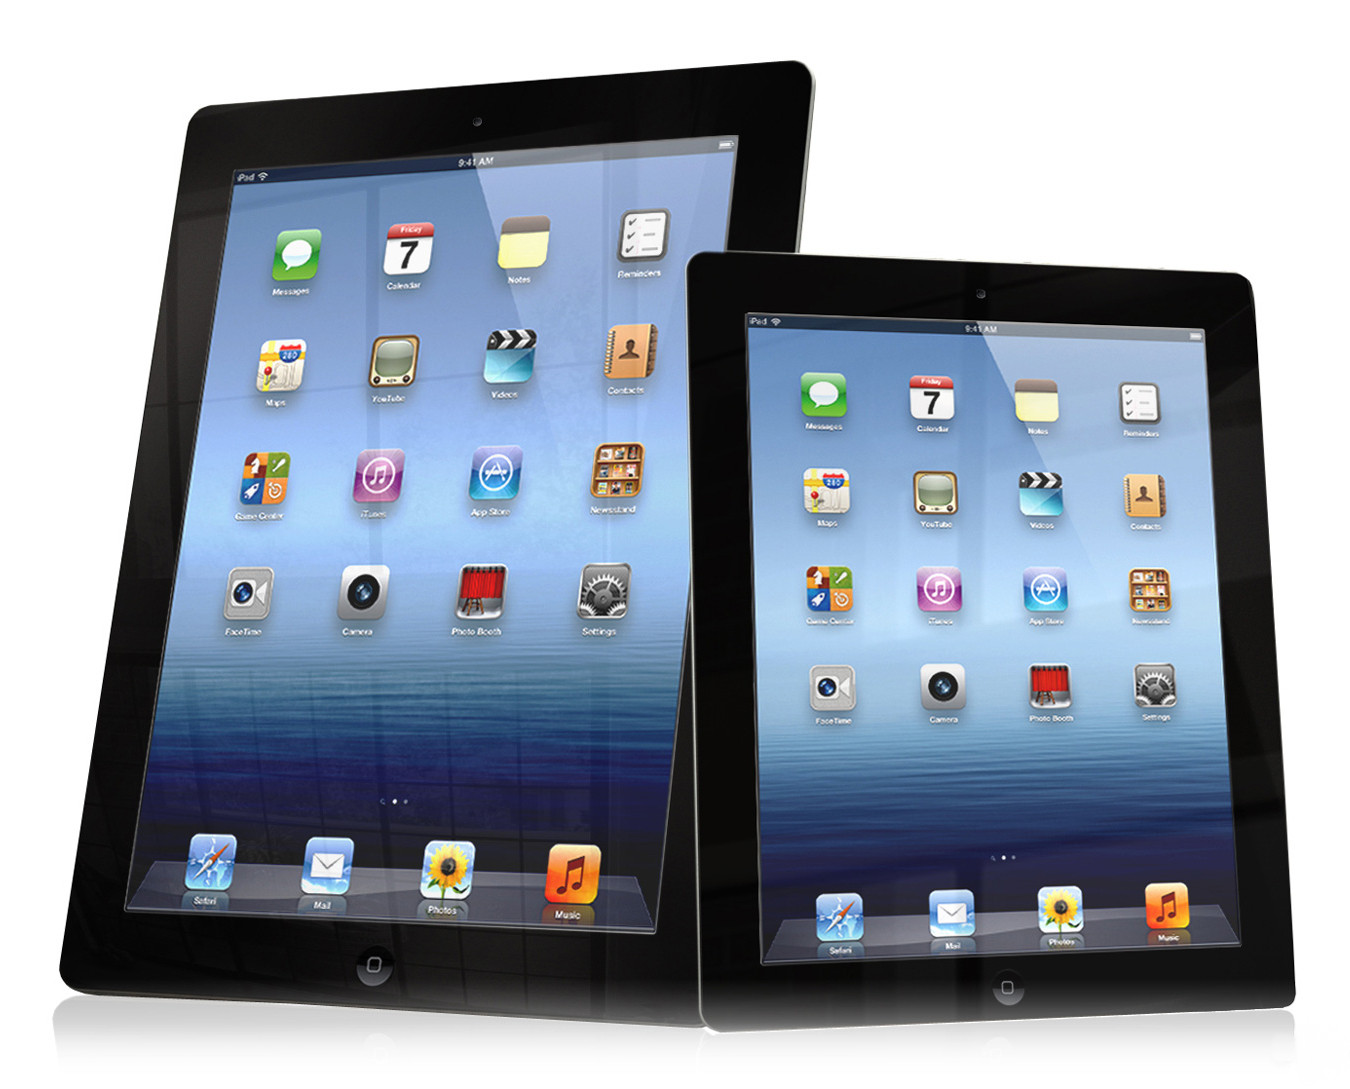 What do you have to do to move from one iPad into another iPad?